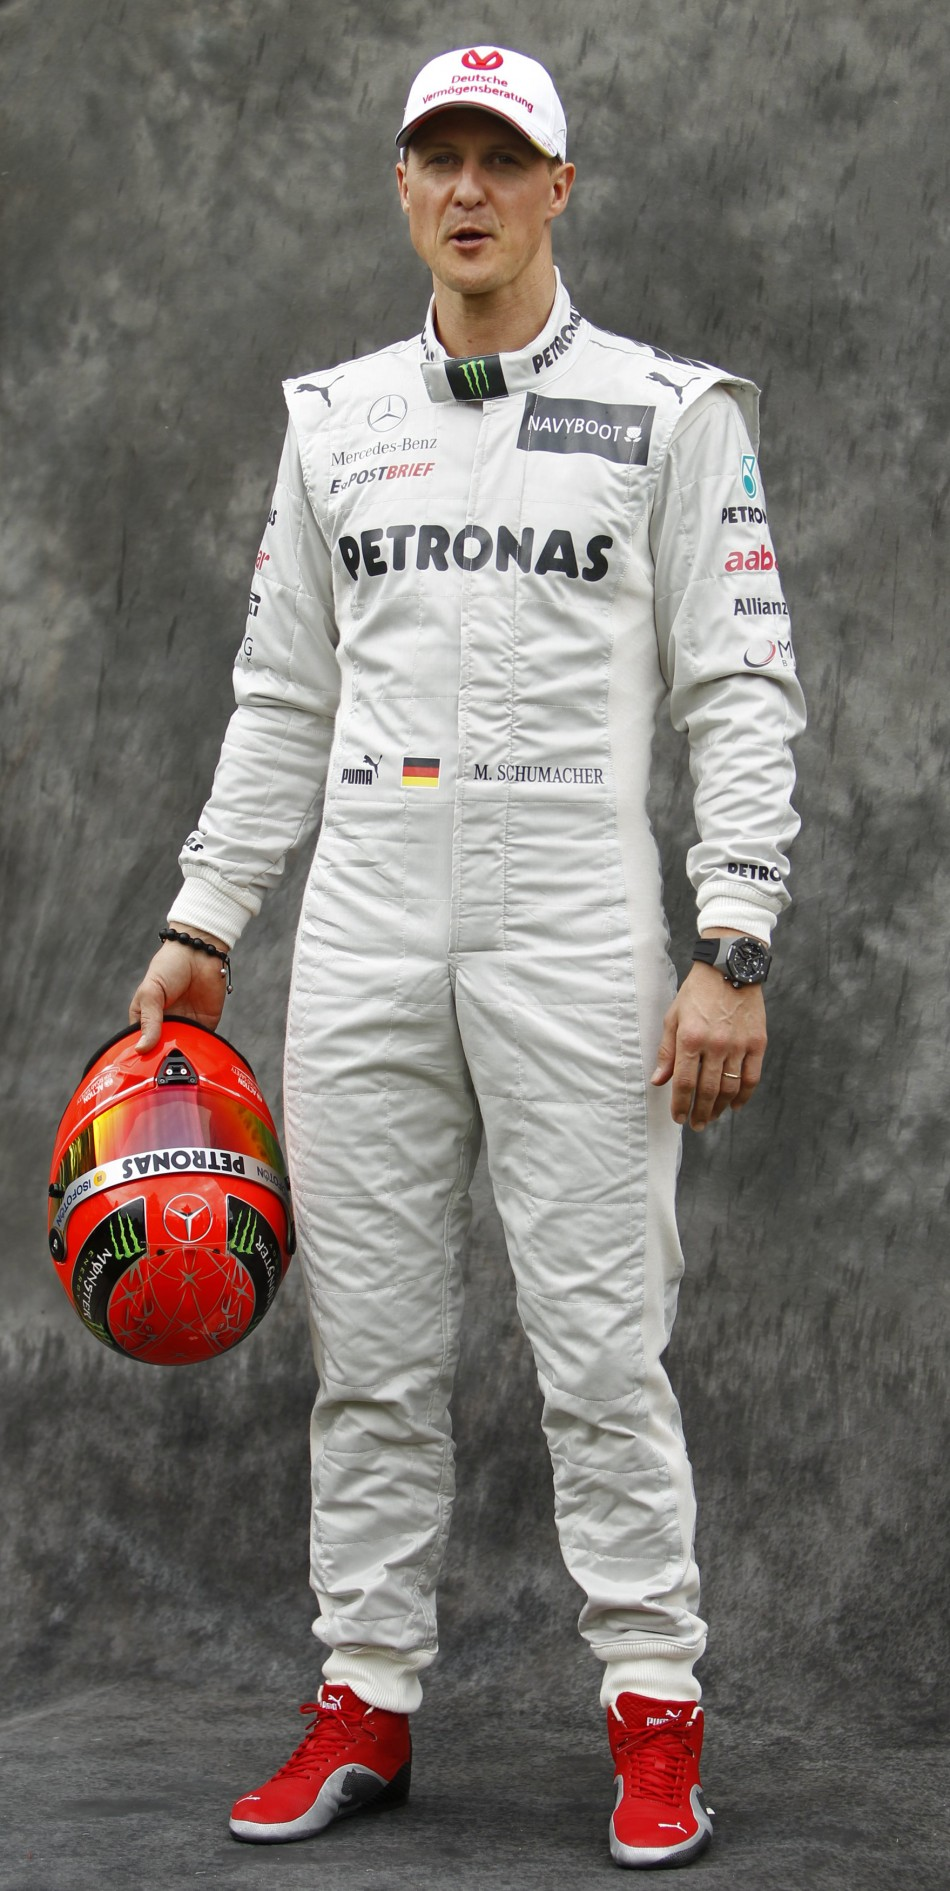 Mercedes Formula One driver Schumacher poses prior to the Australian F1 Grand Prix at the Albert Park circuit in Melbourne